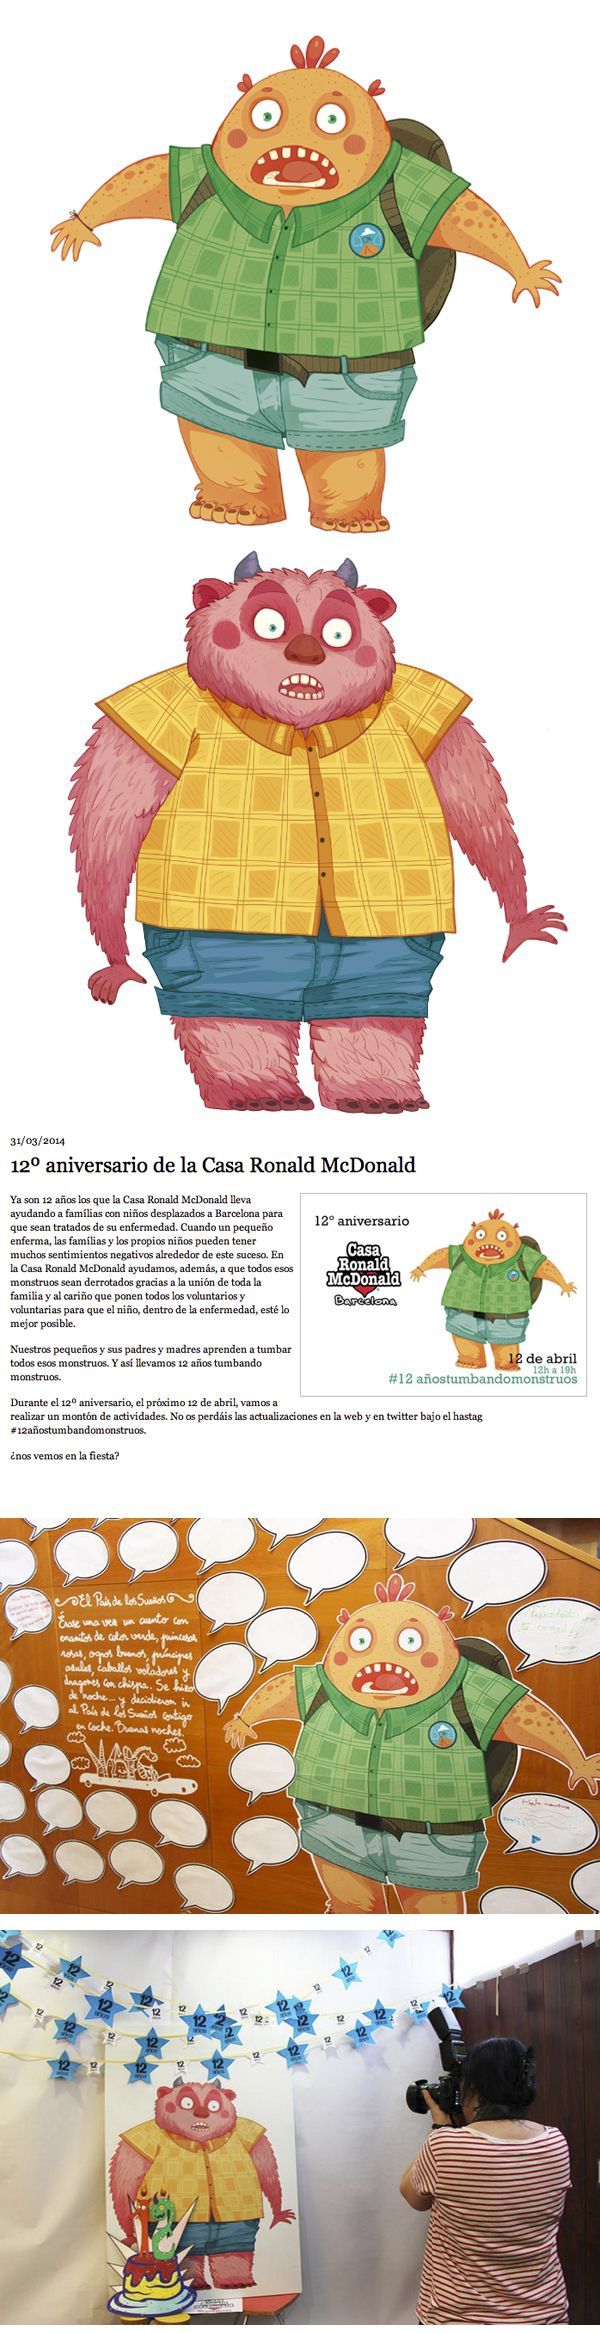 best 25 ronald mcdonald ideas on pinterest ronald mcdonald